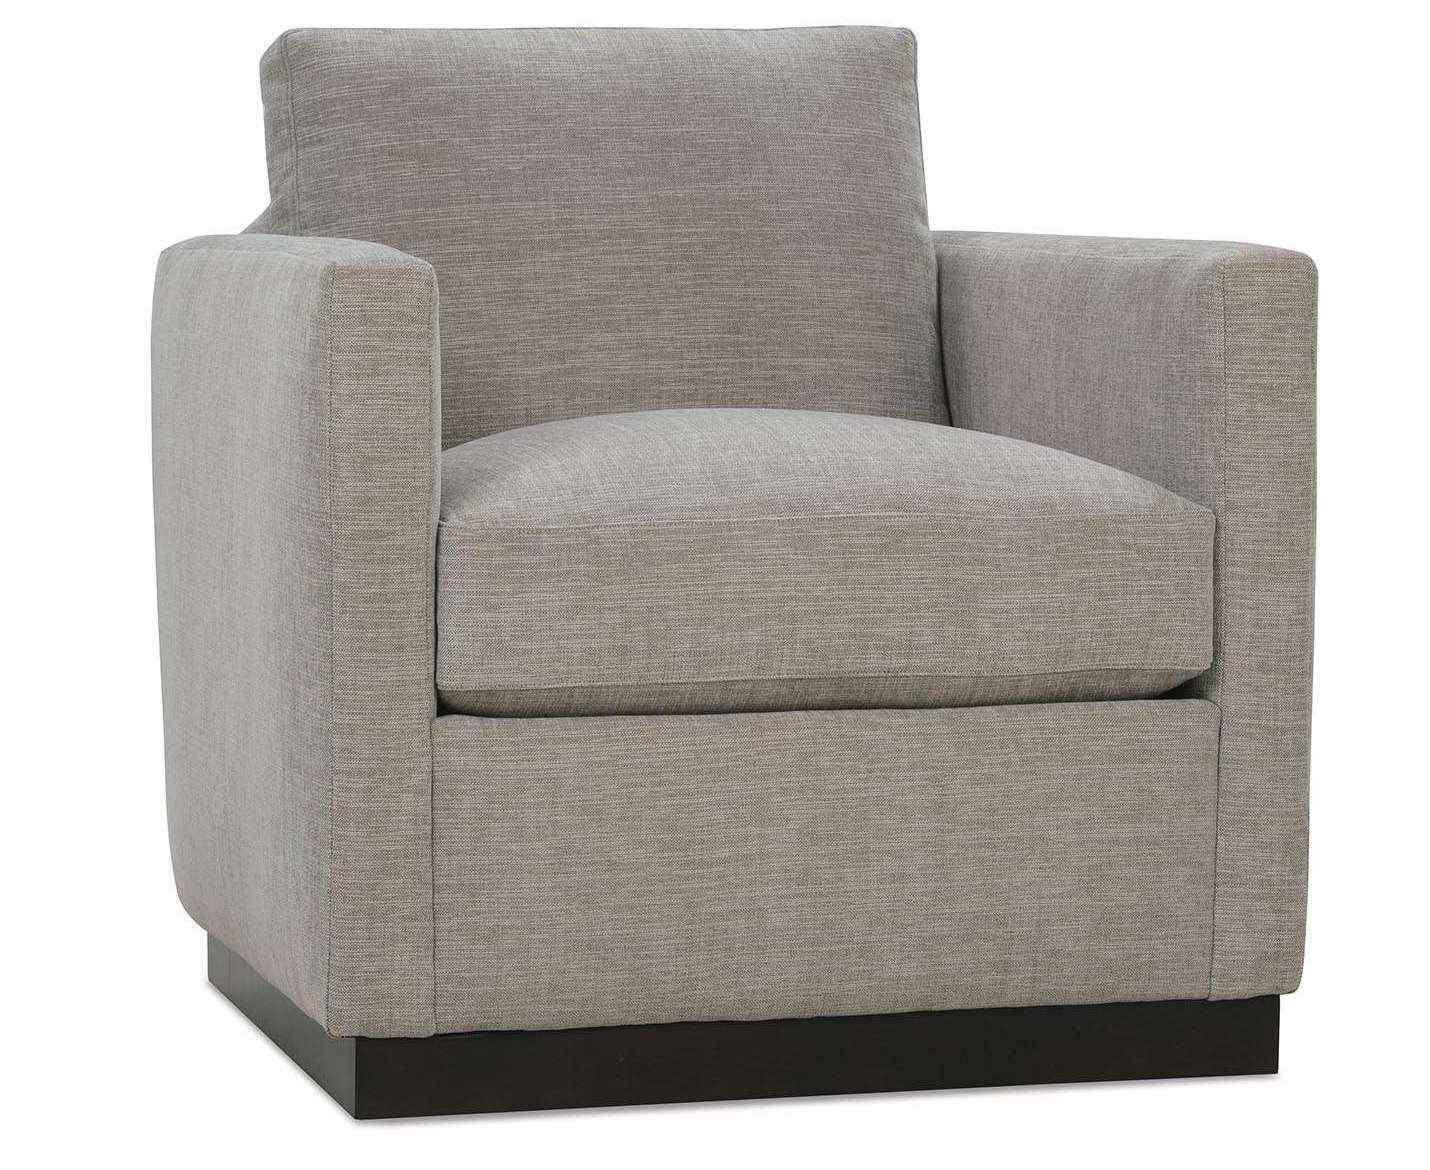 swivel chair quotes baby support allie chairs bed down furniture gallery